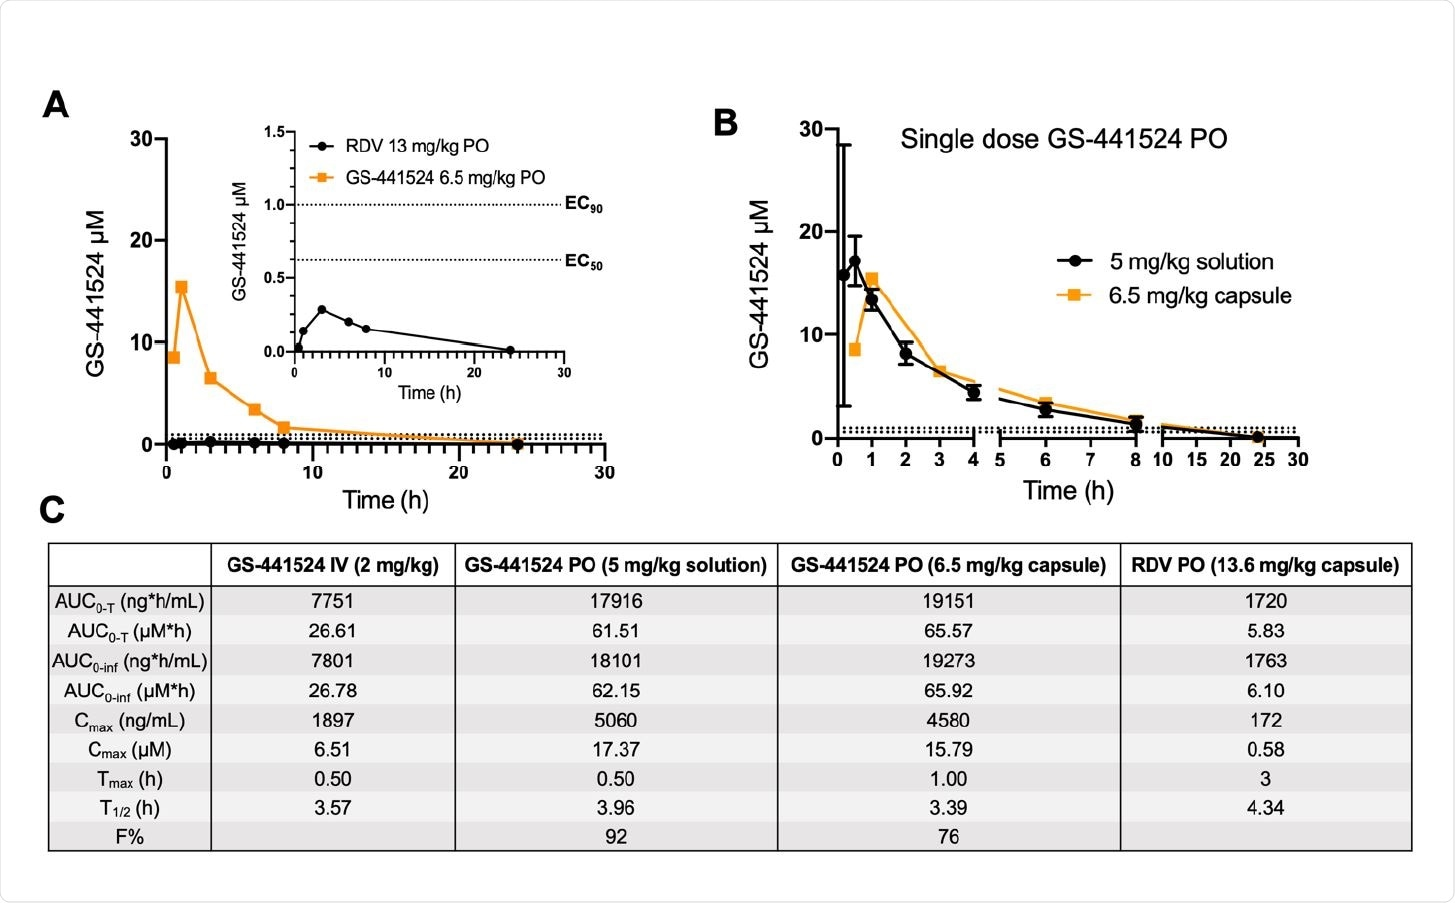 Plasma c 187 oncentrations of GS-441524 following a single oral dose of remdesivir or GS-441524 in dogs. (A) Head-to-head PK comparison following a single equimolar dose of remdesivir (black, 13.6 mg/kg) and GS-441524 (orange, 6.5 mg/kg) in male beagle dogs (N=1 per compound). Both compounds were administered in capsule form. Plasma concentrations of GS-441524 following compound administration are plotted for the following timepoints (h): 0.5, 1, 3, 6, 8, 24. A focused view of GS- 441524 concentrations following oral administration of remdesivir is shown in top right corner. (B) Comparison of plasma concentrations of GS-441524 following oral administration as a solution (black, 5 mg/kg;